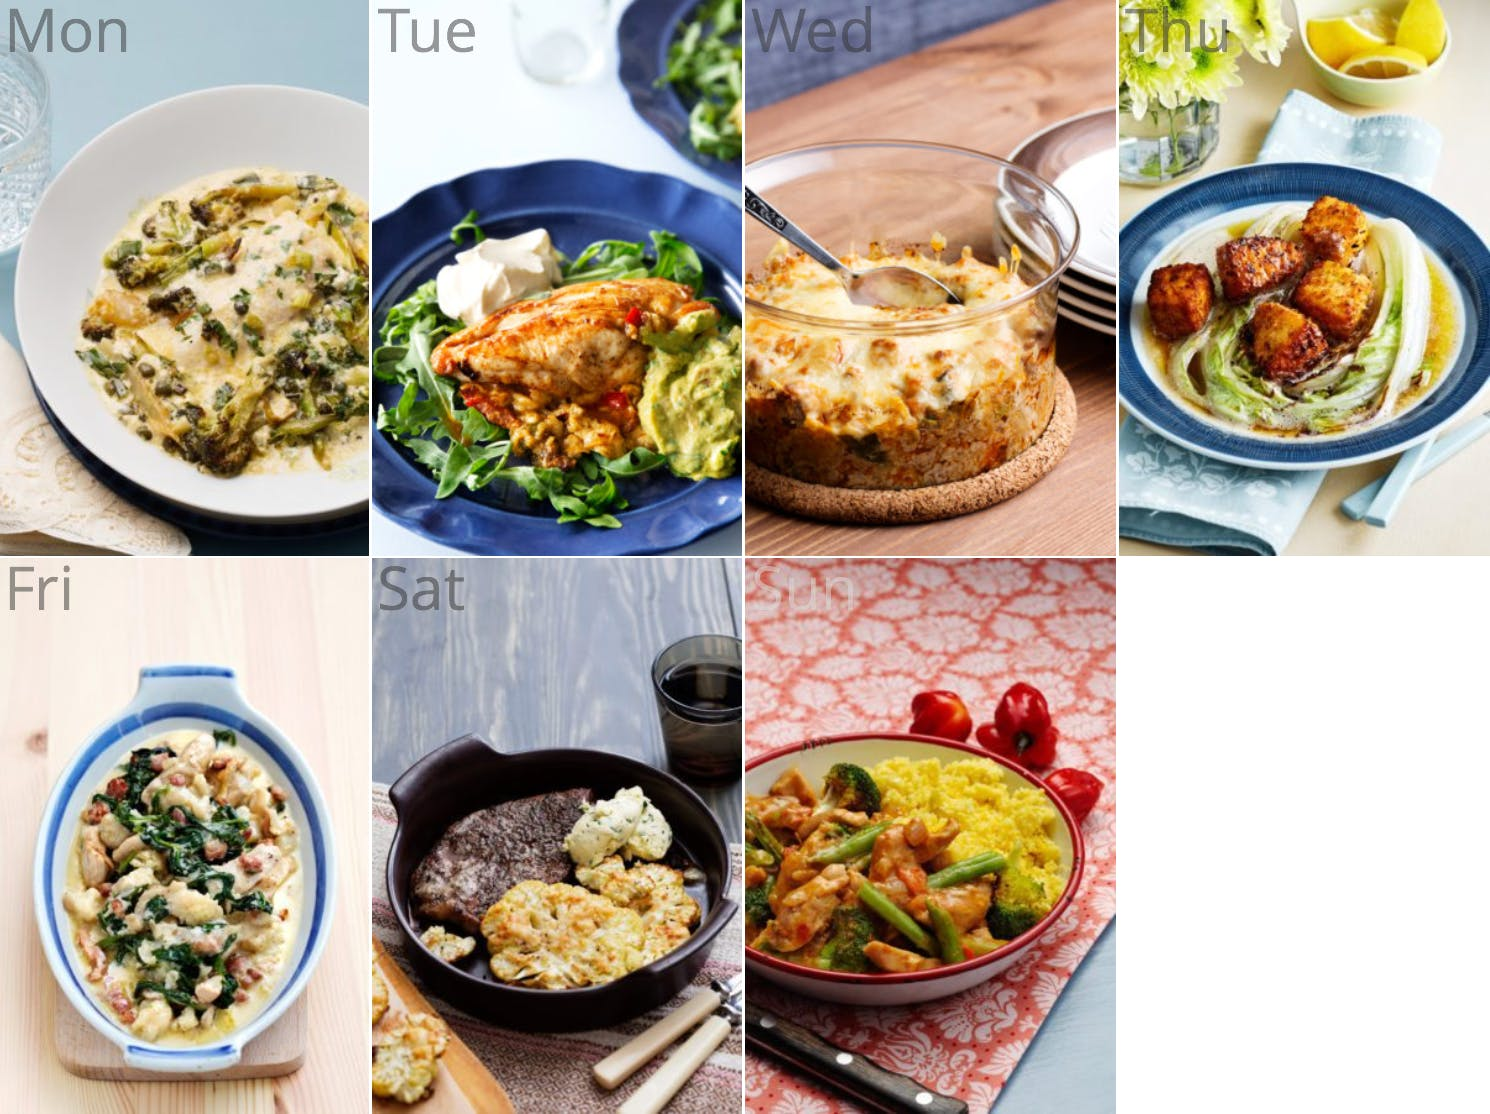 New <strong>Low-Carb and Egg-Free</strong> Meal Plan